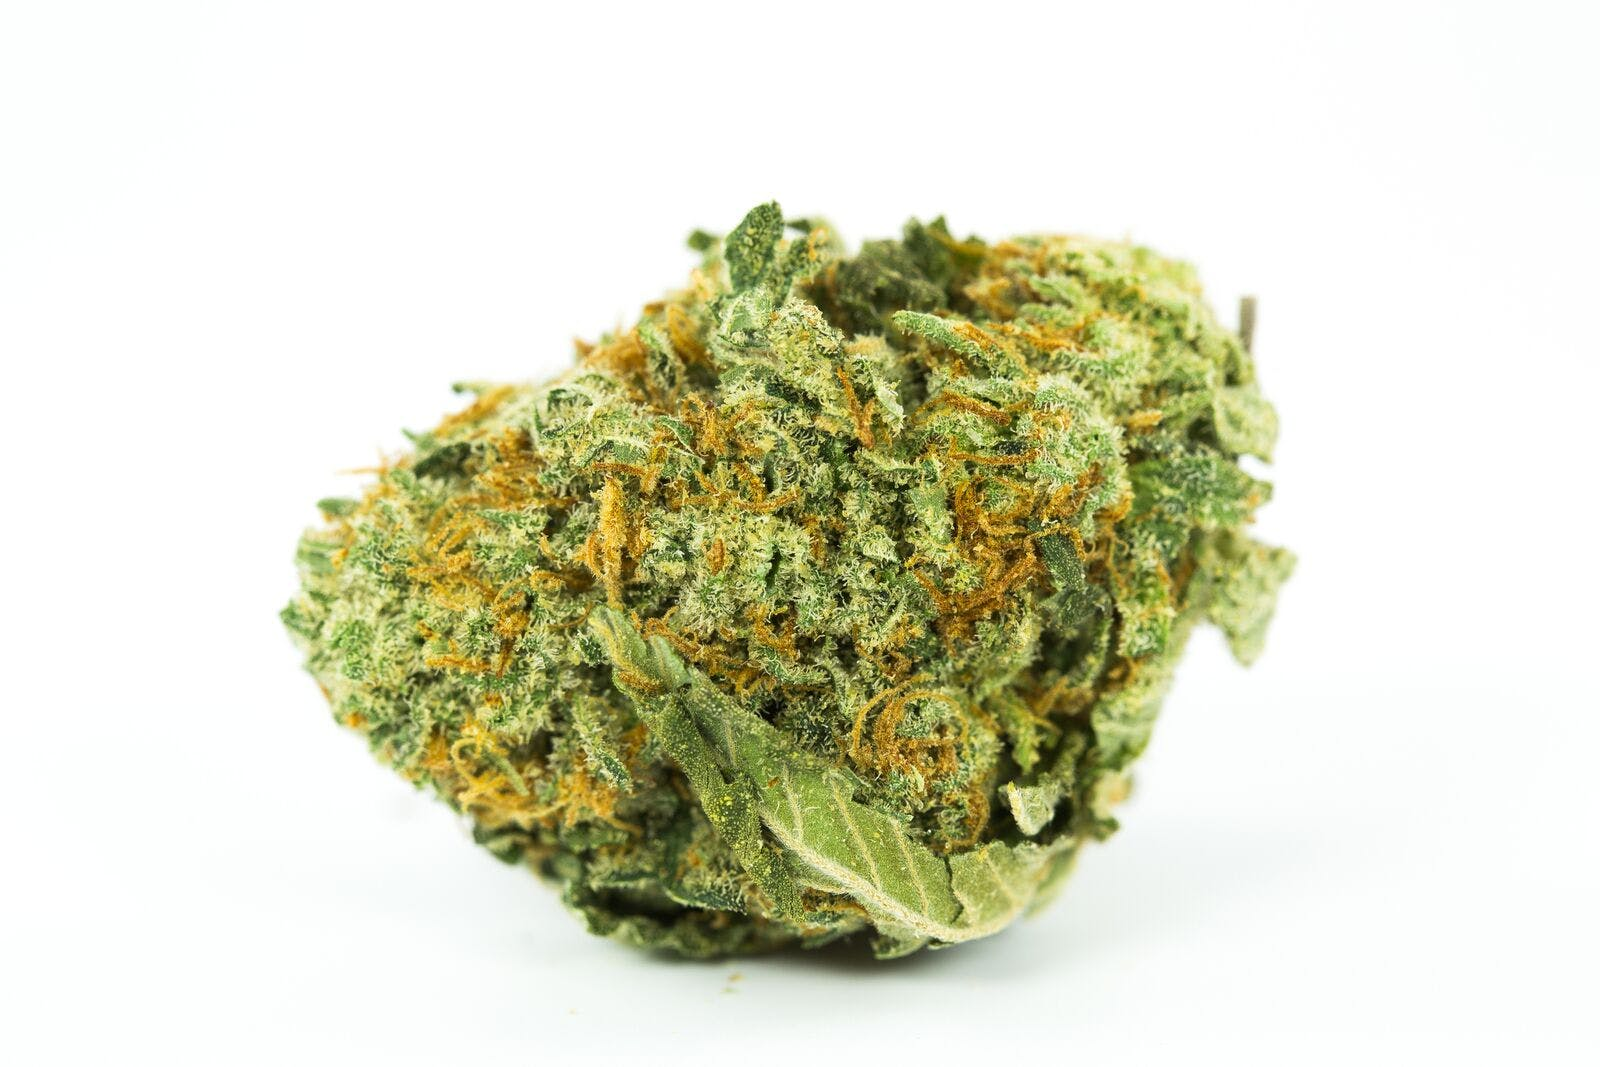 Blueberry Lemonade Weed; Blueberry Lemonade Cannabis Strain; Blueberry Lemonade Indica Marijuana Strain